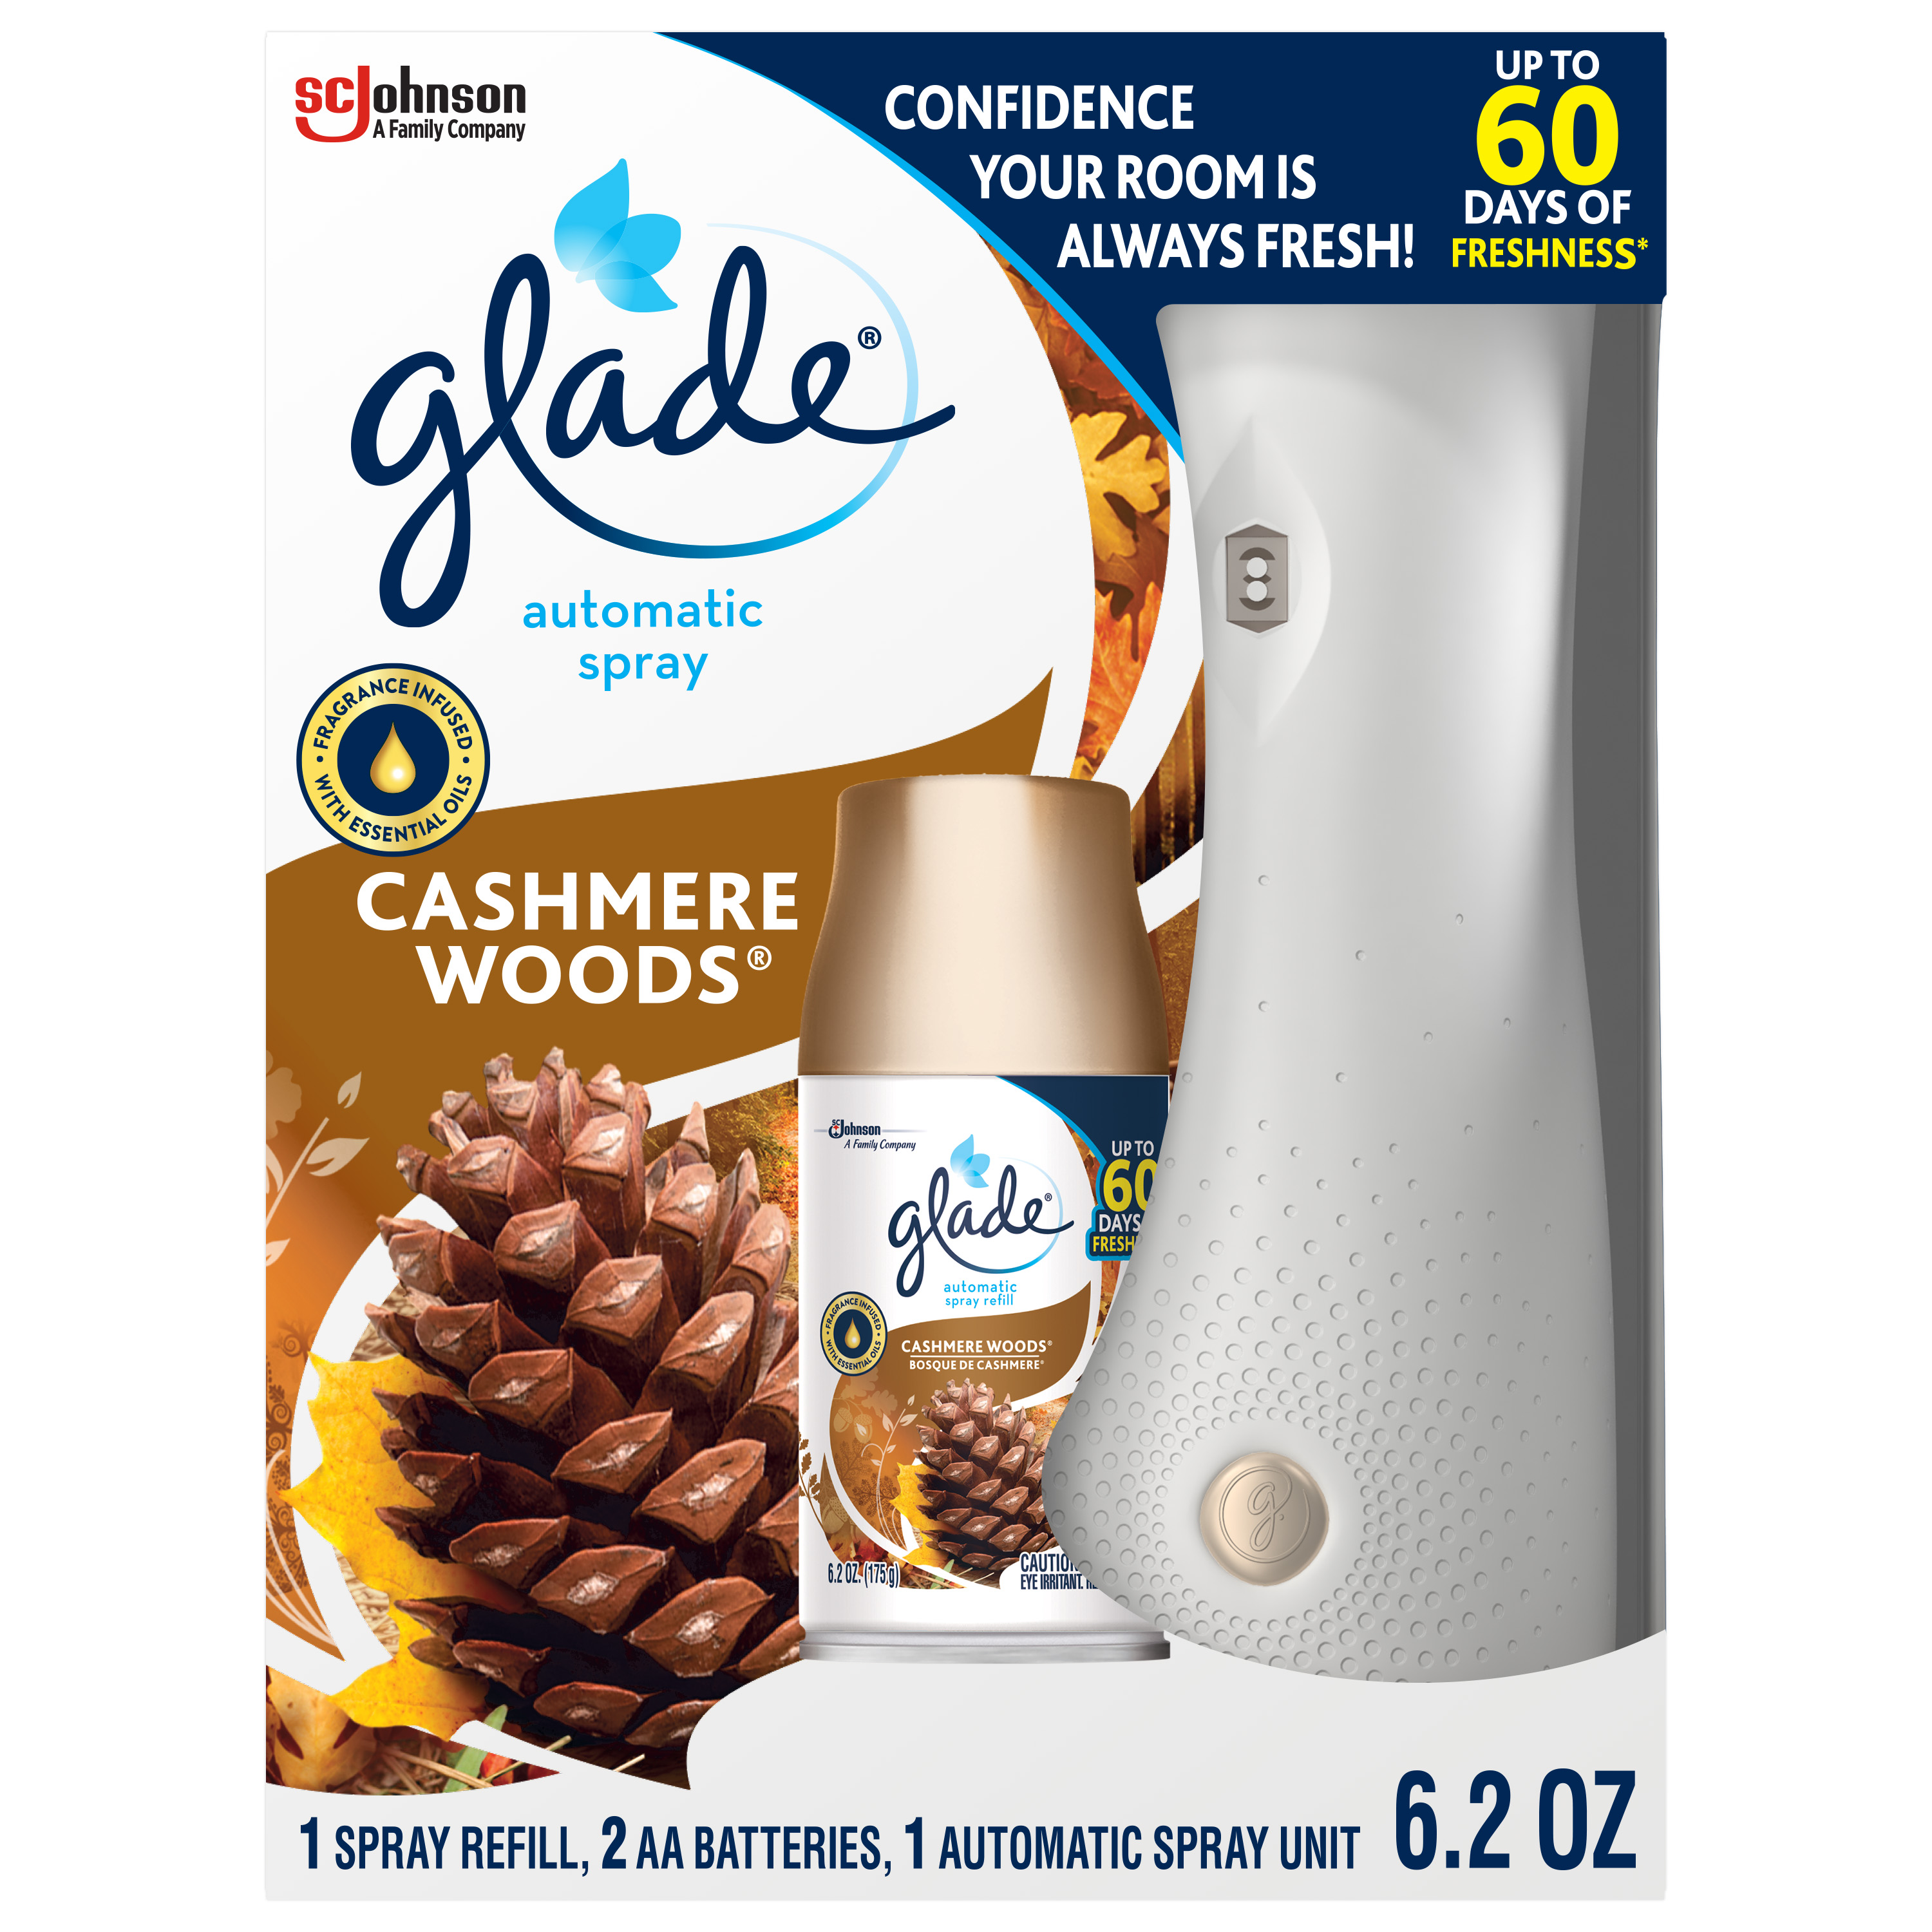 Glade Automatic Spray 1 Warmer + 1 CT Refill Starter Kit, Cashmere Woods, 6.2 OZ. Total, Air Freshener Infused with Essential Oils